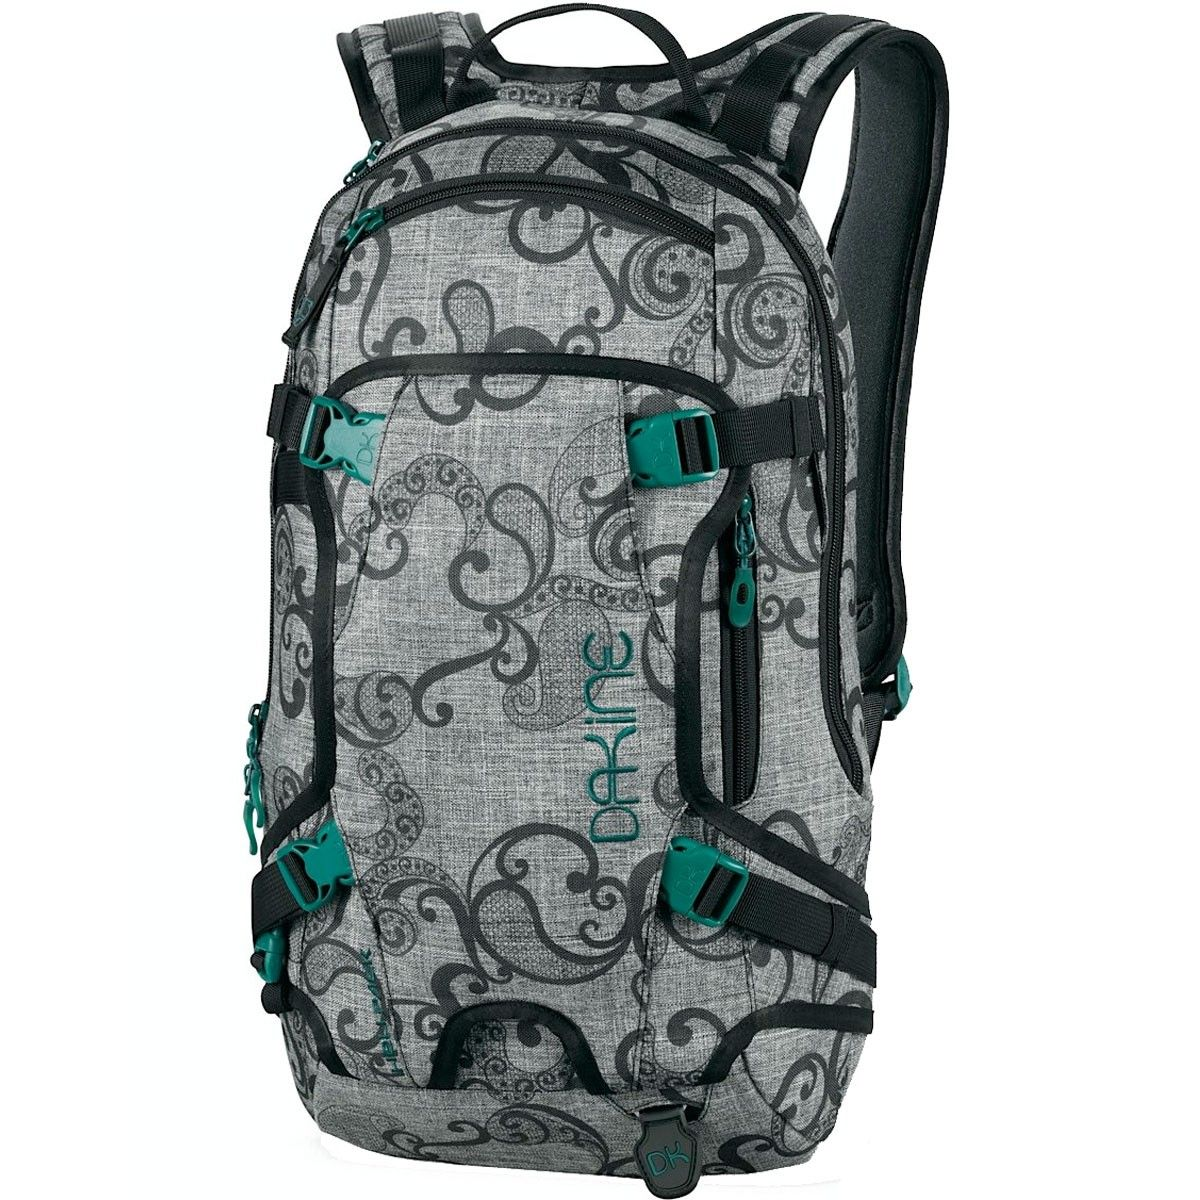 DaKine Women's Heli 11L Backpack 2014 - Juliet Click on image to ...